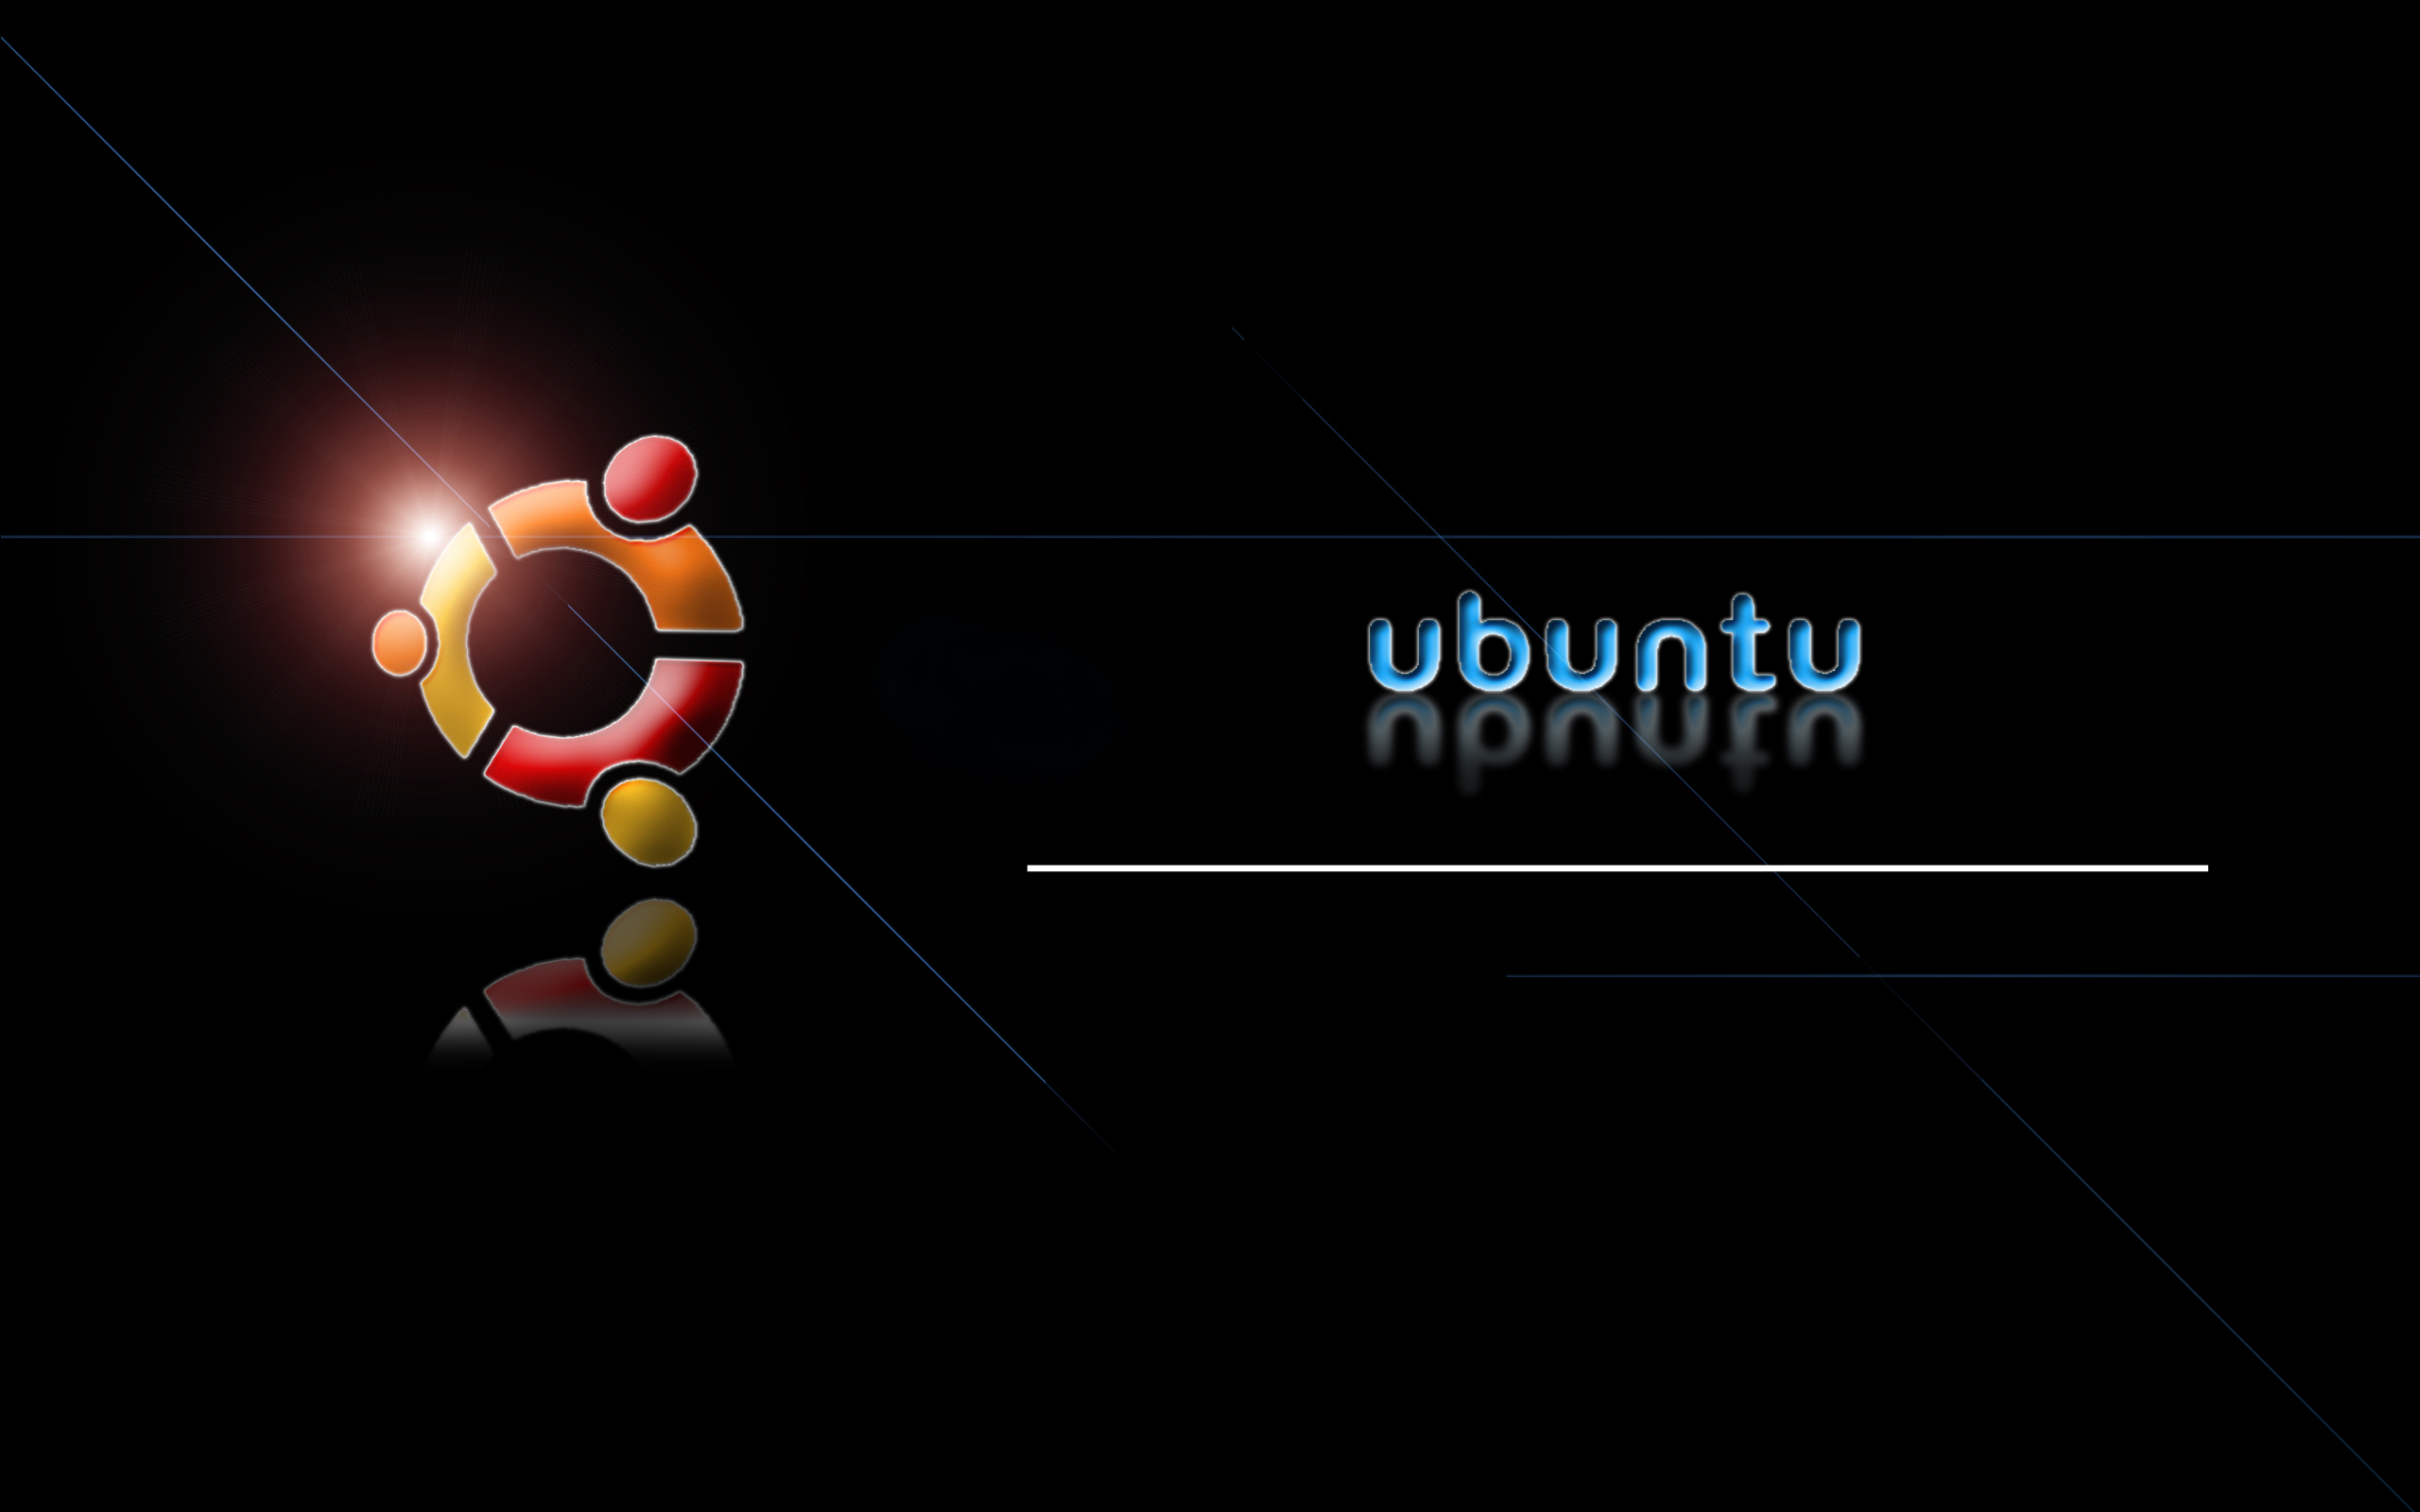 Linux Wallpapers Ubuntu Wallpaper Desktop HD Download Dream 2560x1600